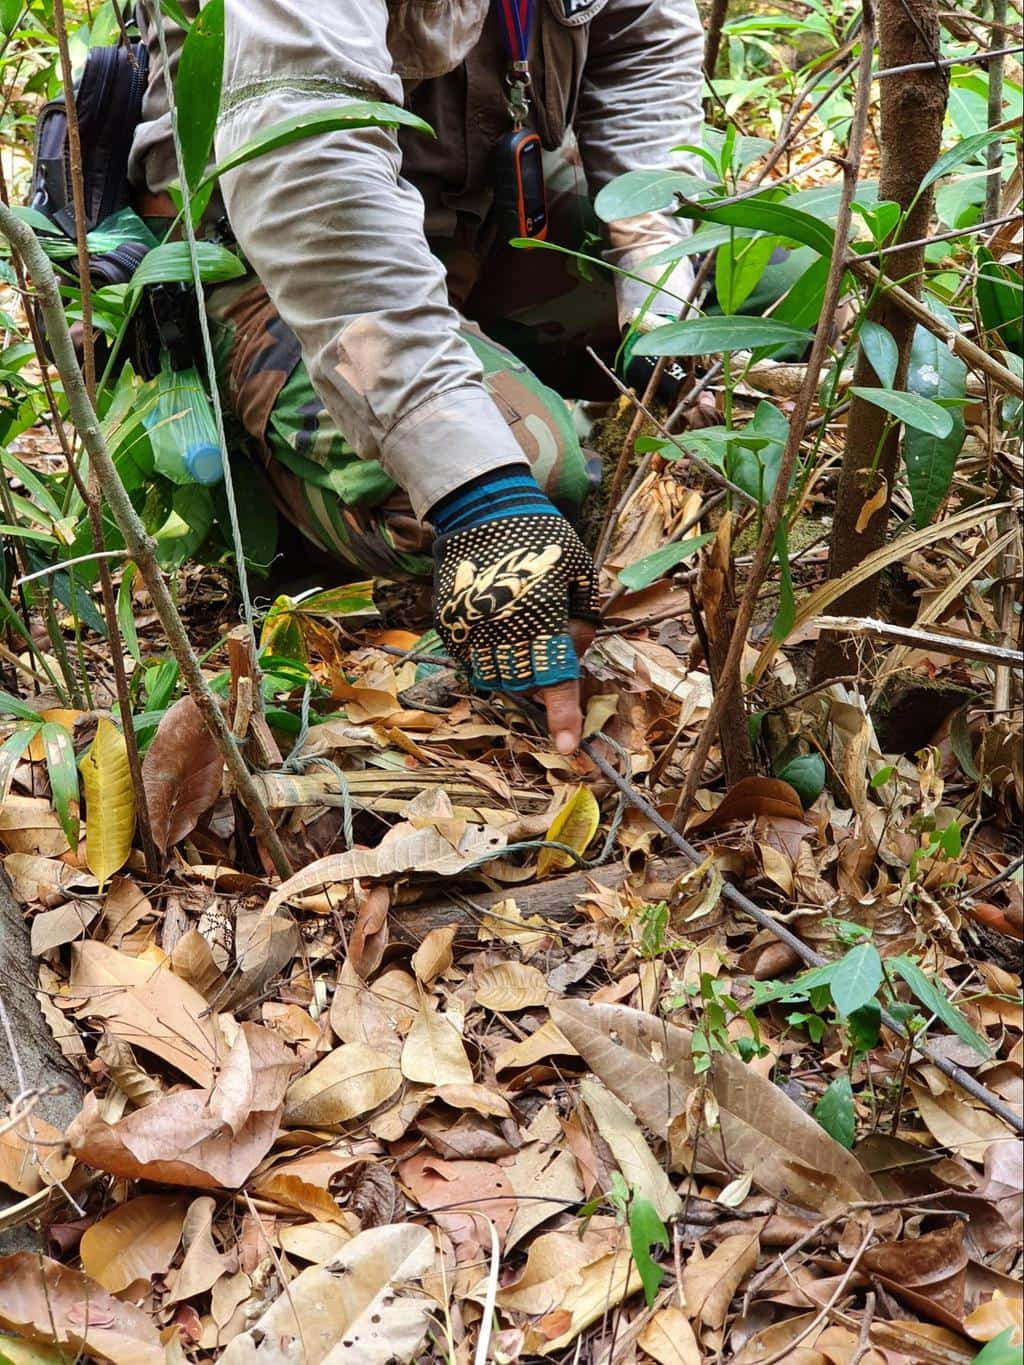 Dismantling traps with the Wildlife Alliance